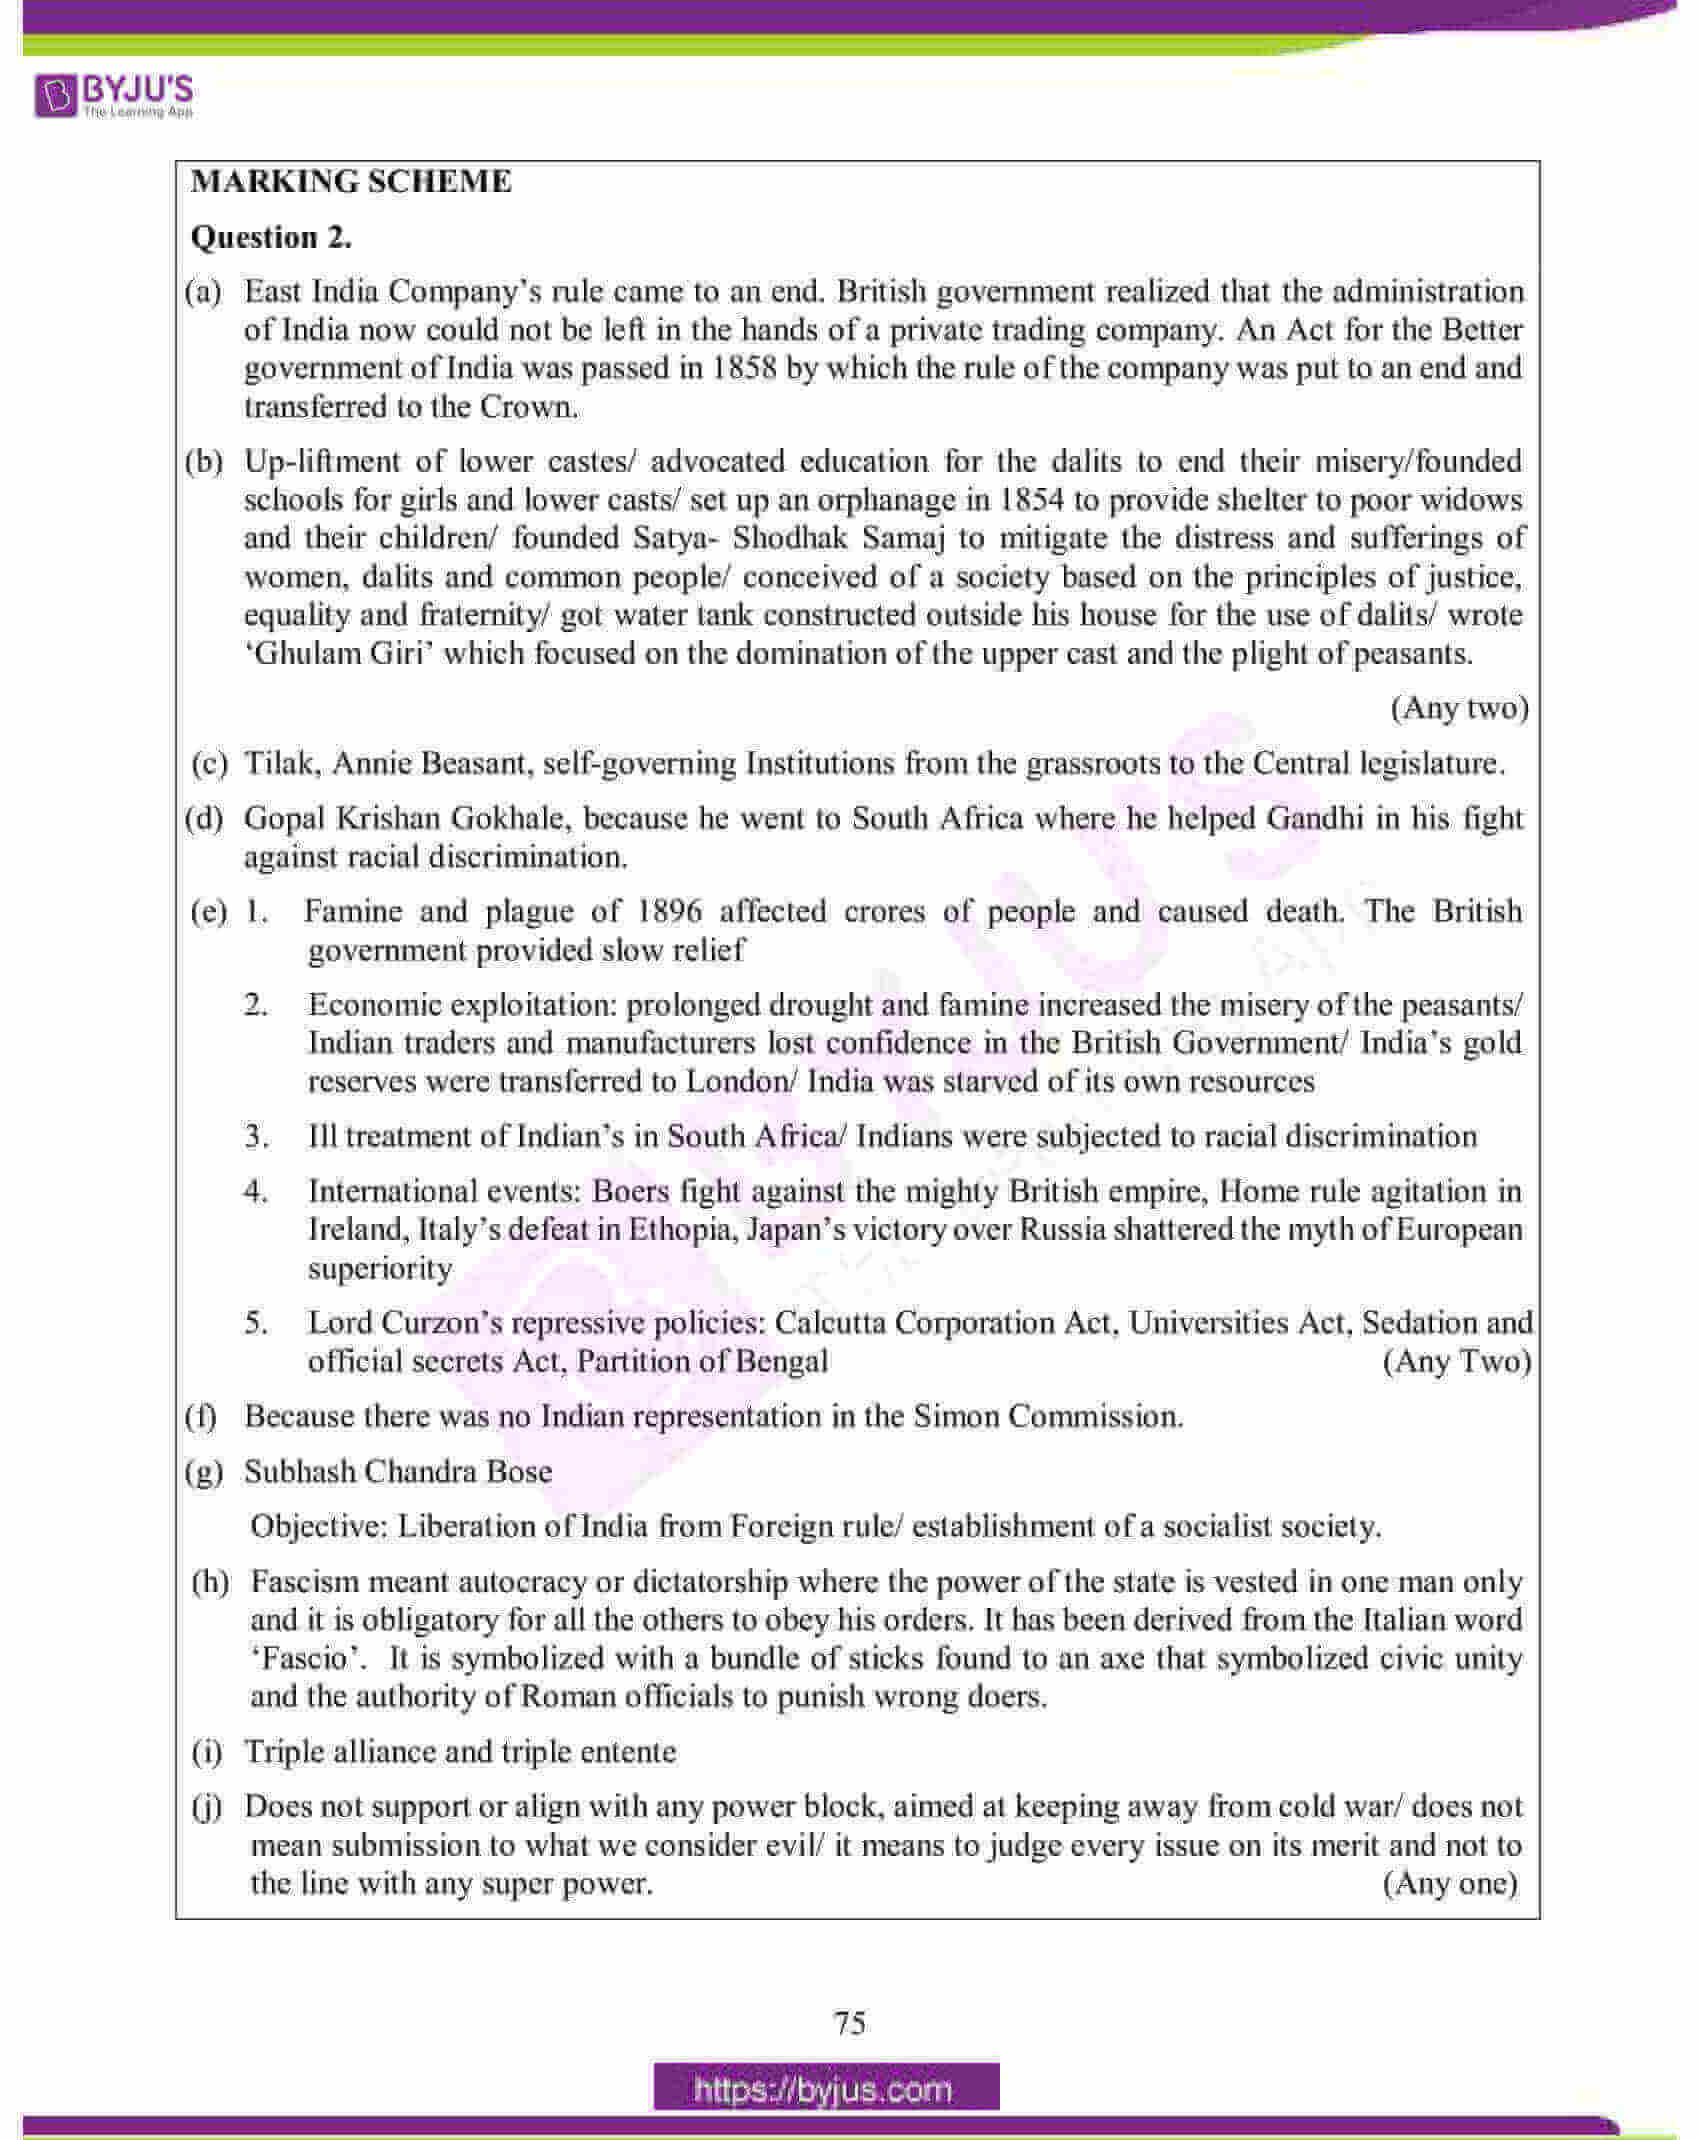 icse class 10 his and civics question paper solution 2015 05